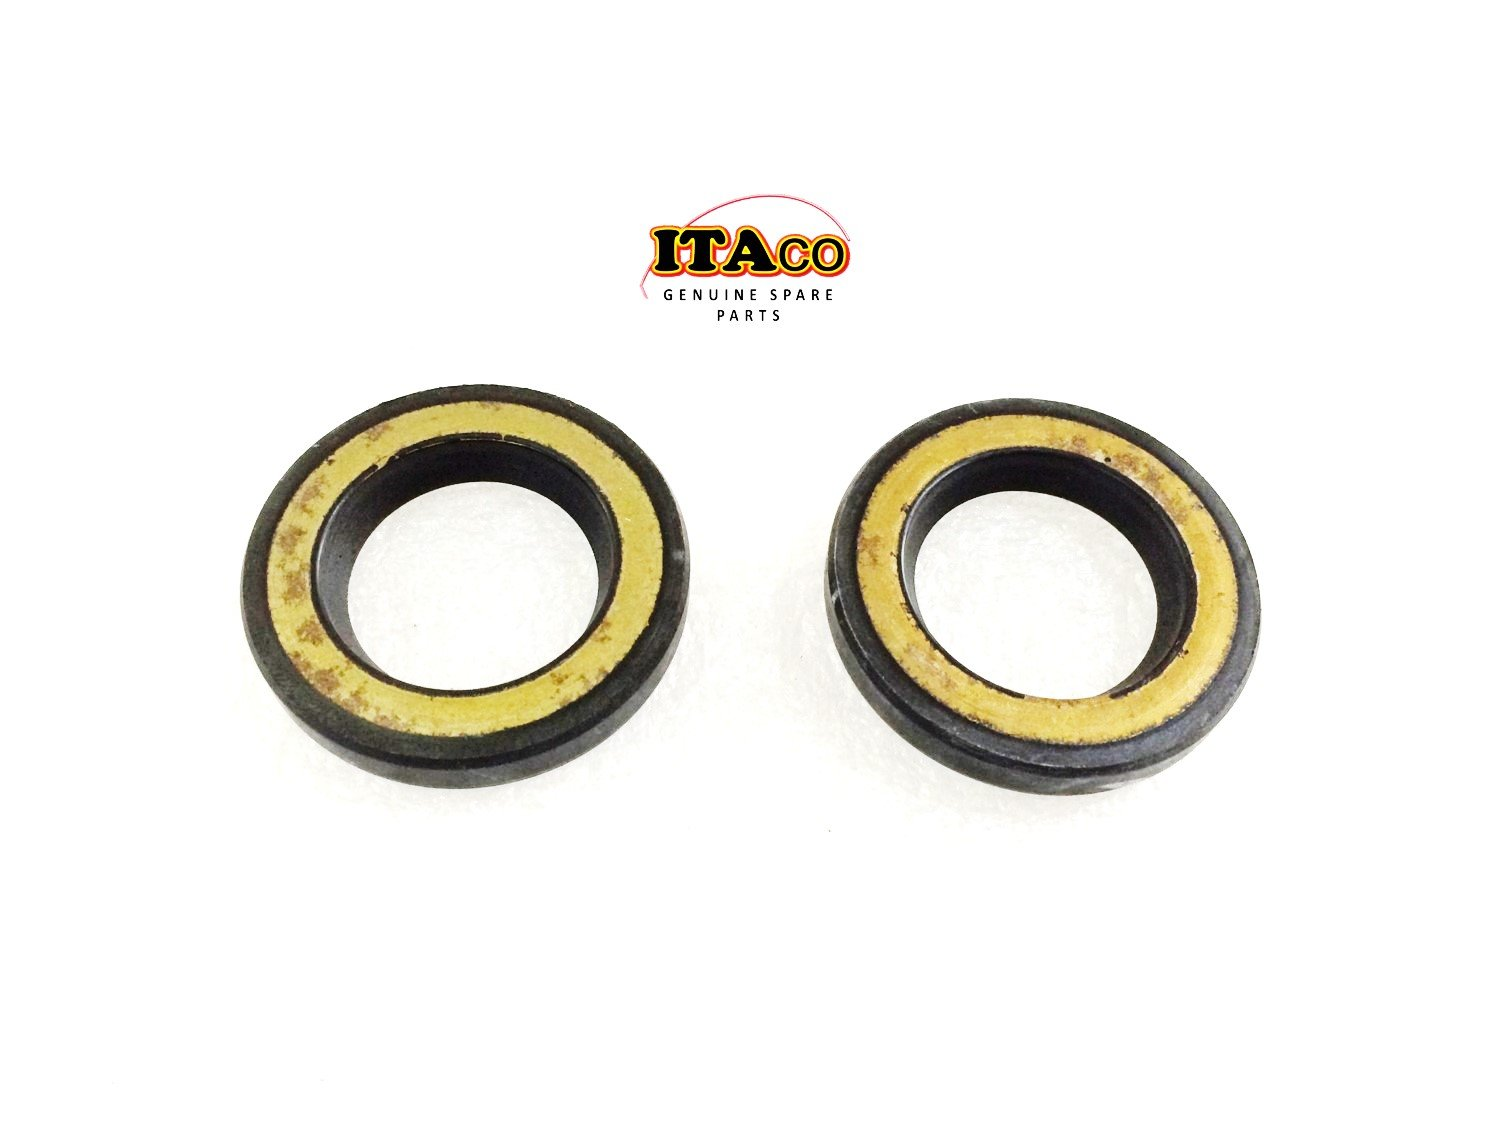 2X OIL SEAL SEALS S-TYPE 93101-23070 23x37x6 fit Yamaha Outboard F 25HP - 70HP 40HP 30HP ITACO